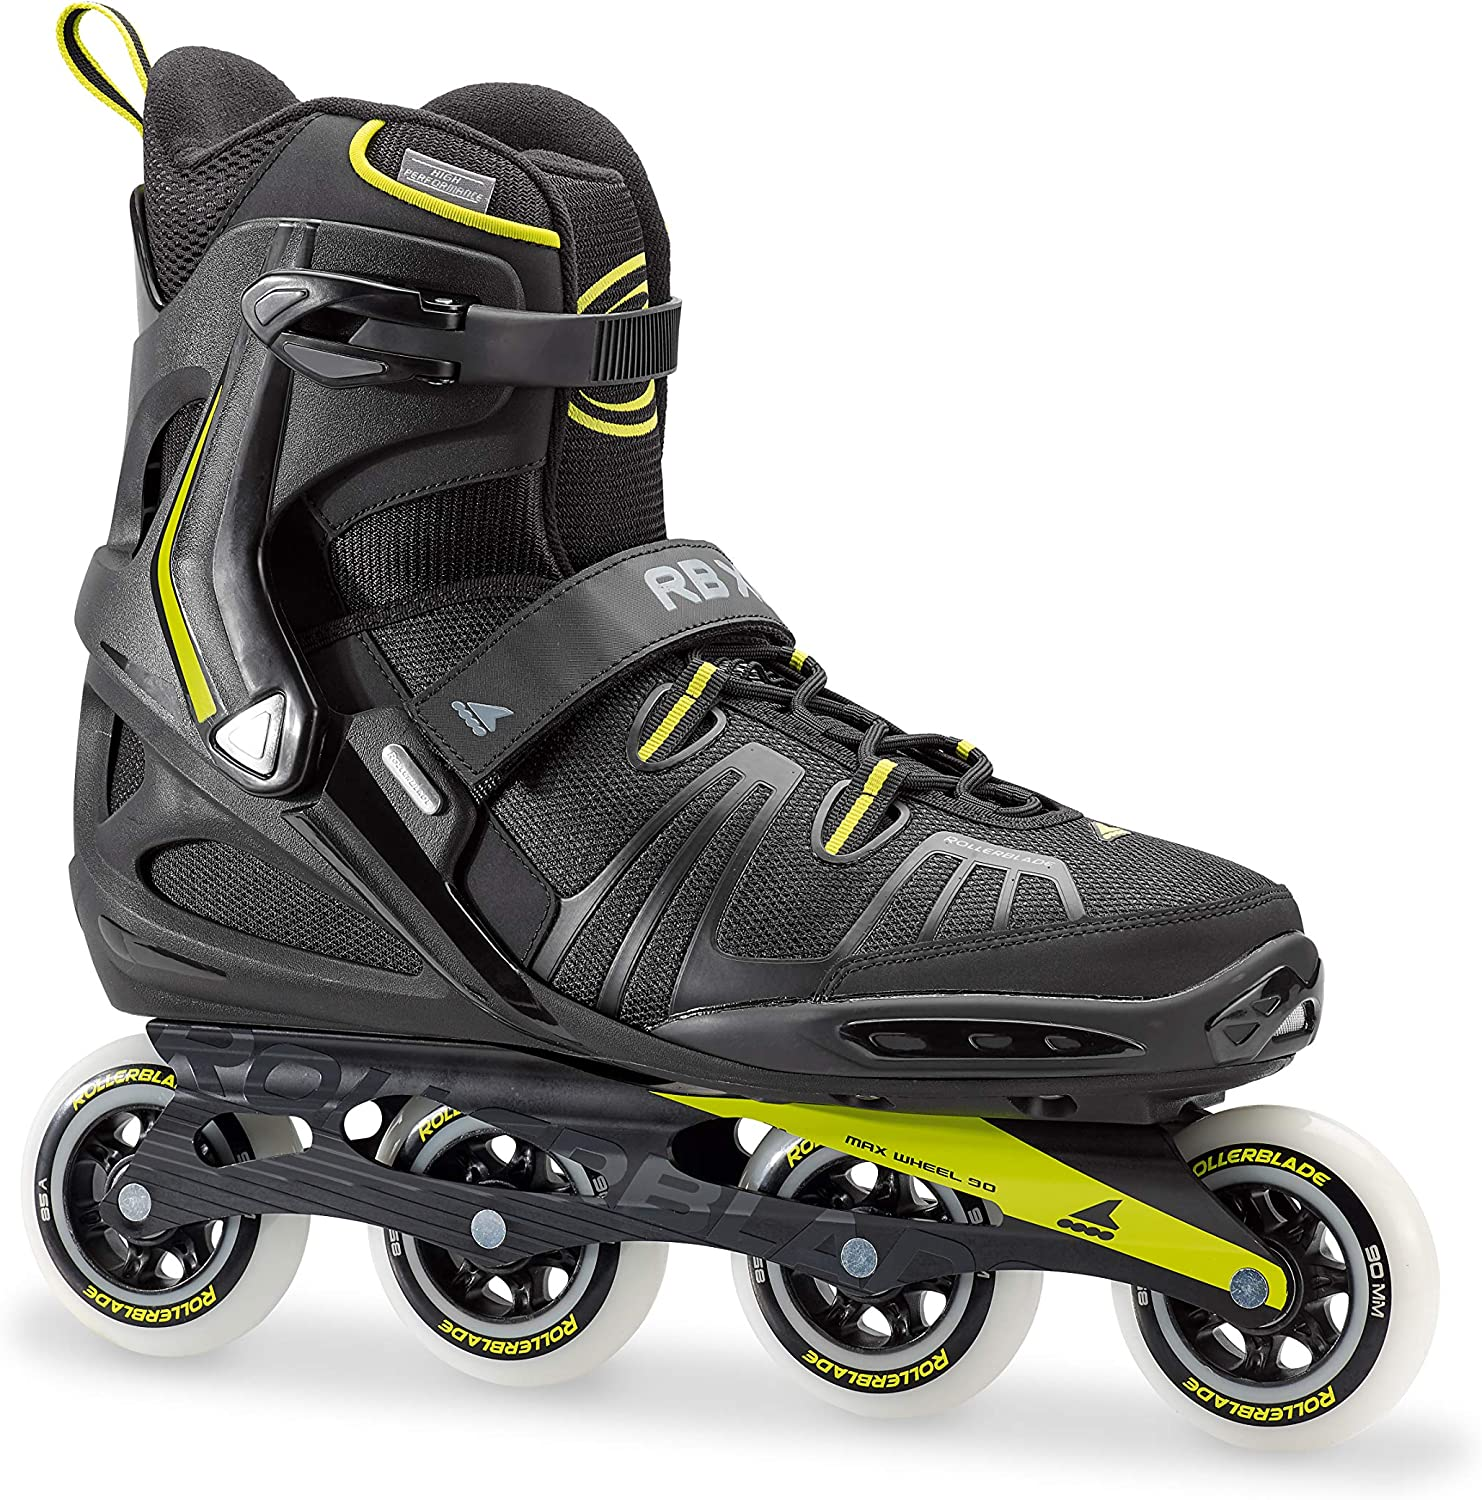 Rollerblade RB XL Men s Adult Fitness Inline Skate, Black and Lime, High Performance Inline Skates